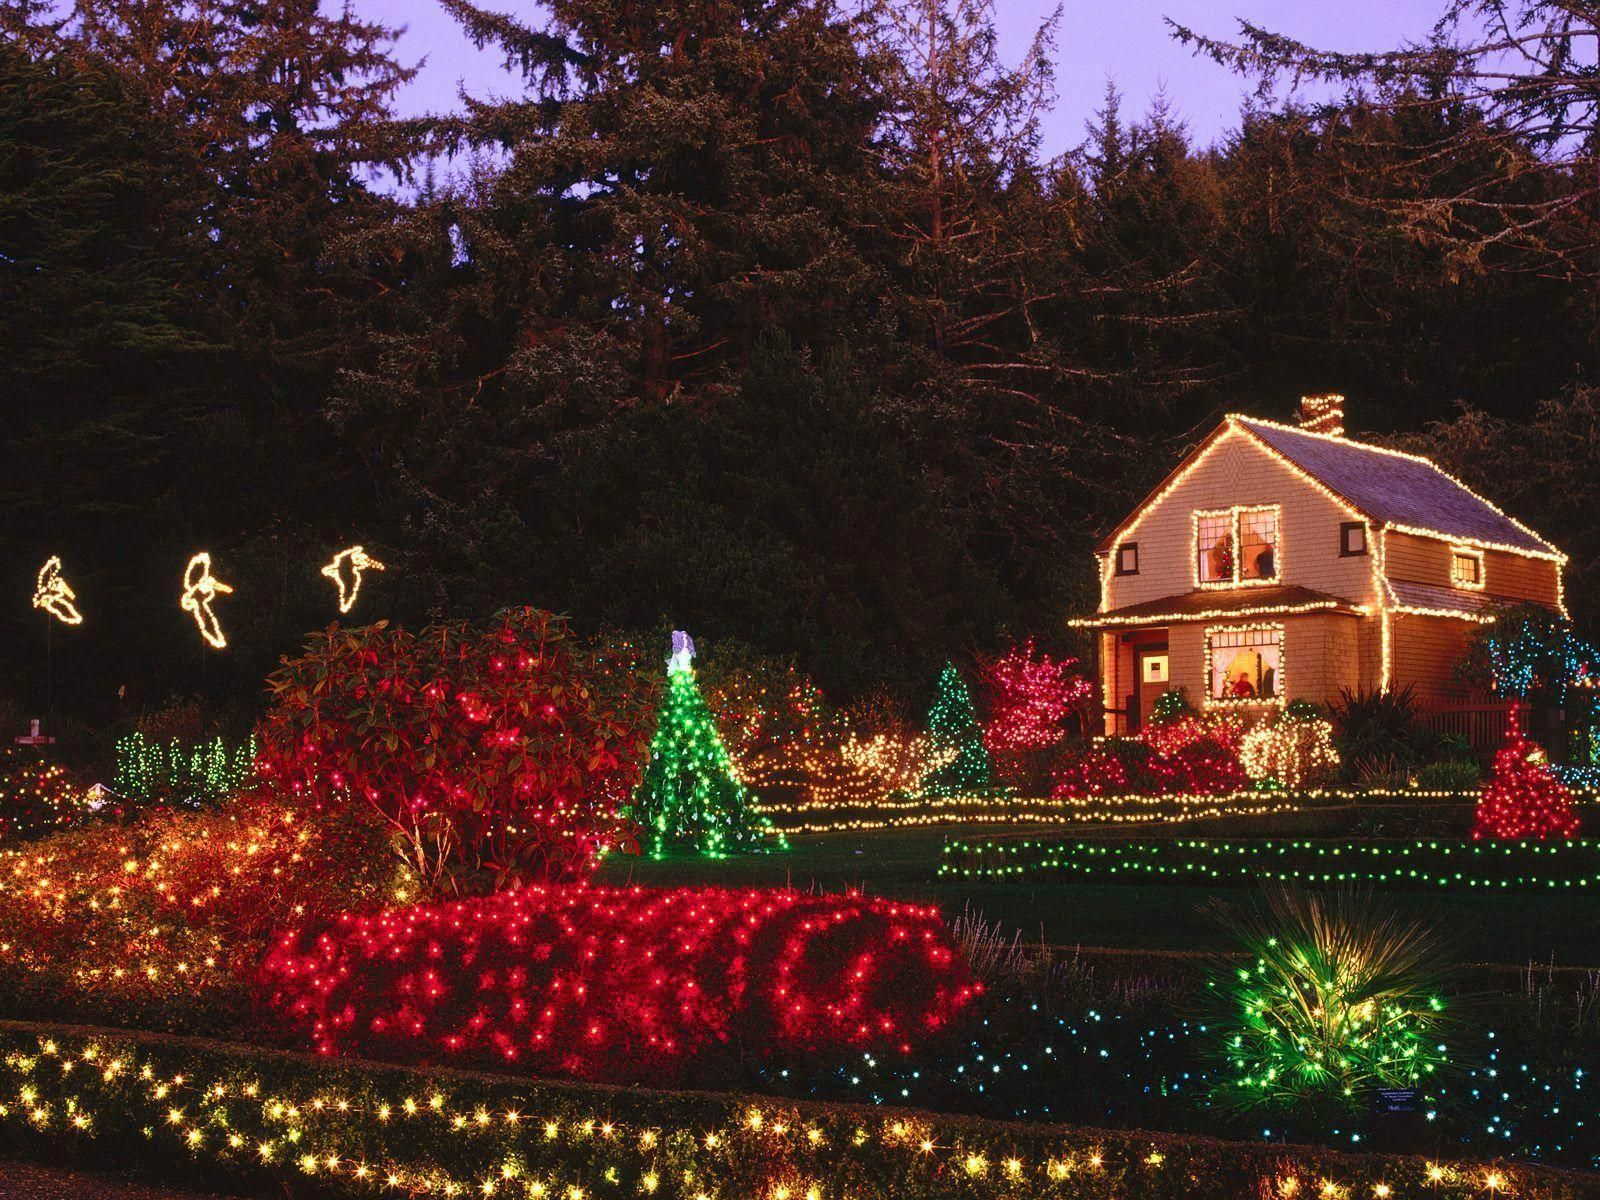 Pin by Festive Christmas Ligt Display on Christmas Light Fight